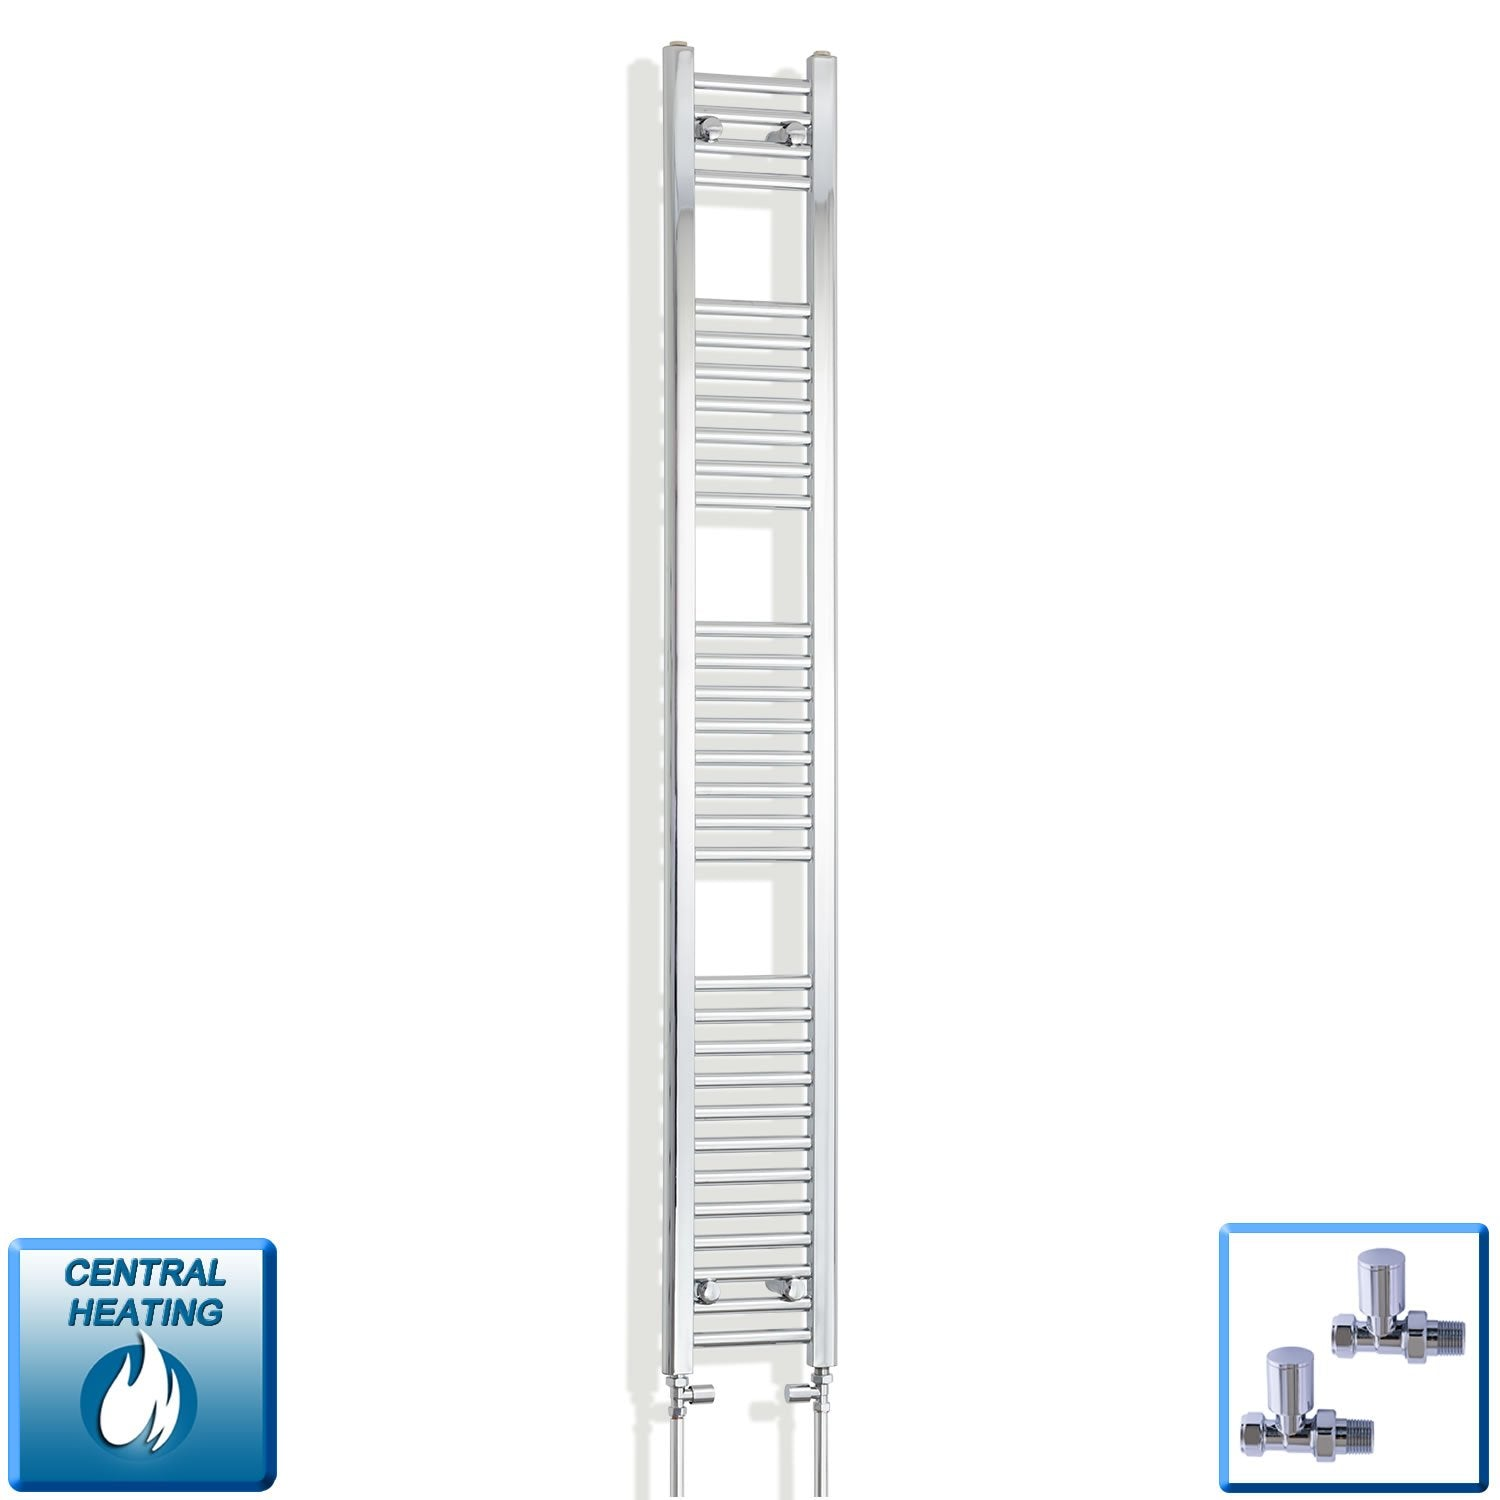 250mm Wide 1800mm High Flat Chrome Heated Towel Rail Radiator,With Straight Valve